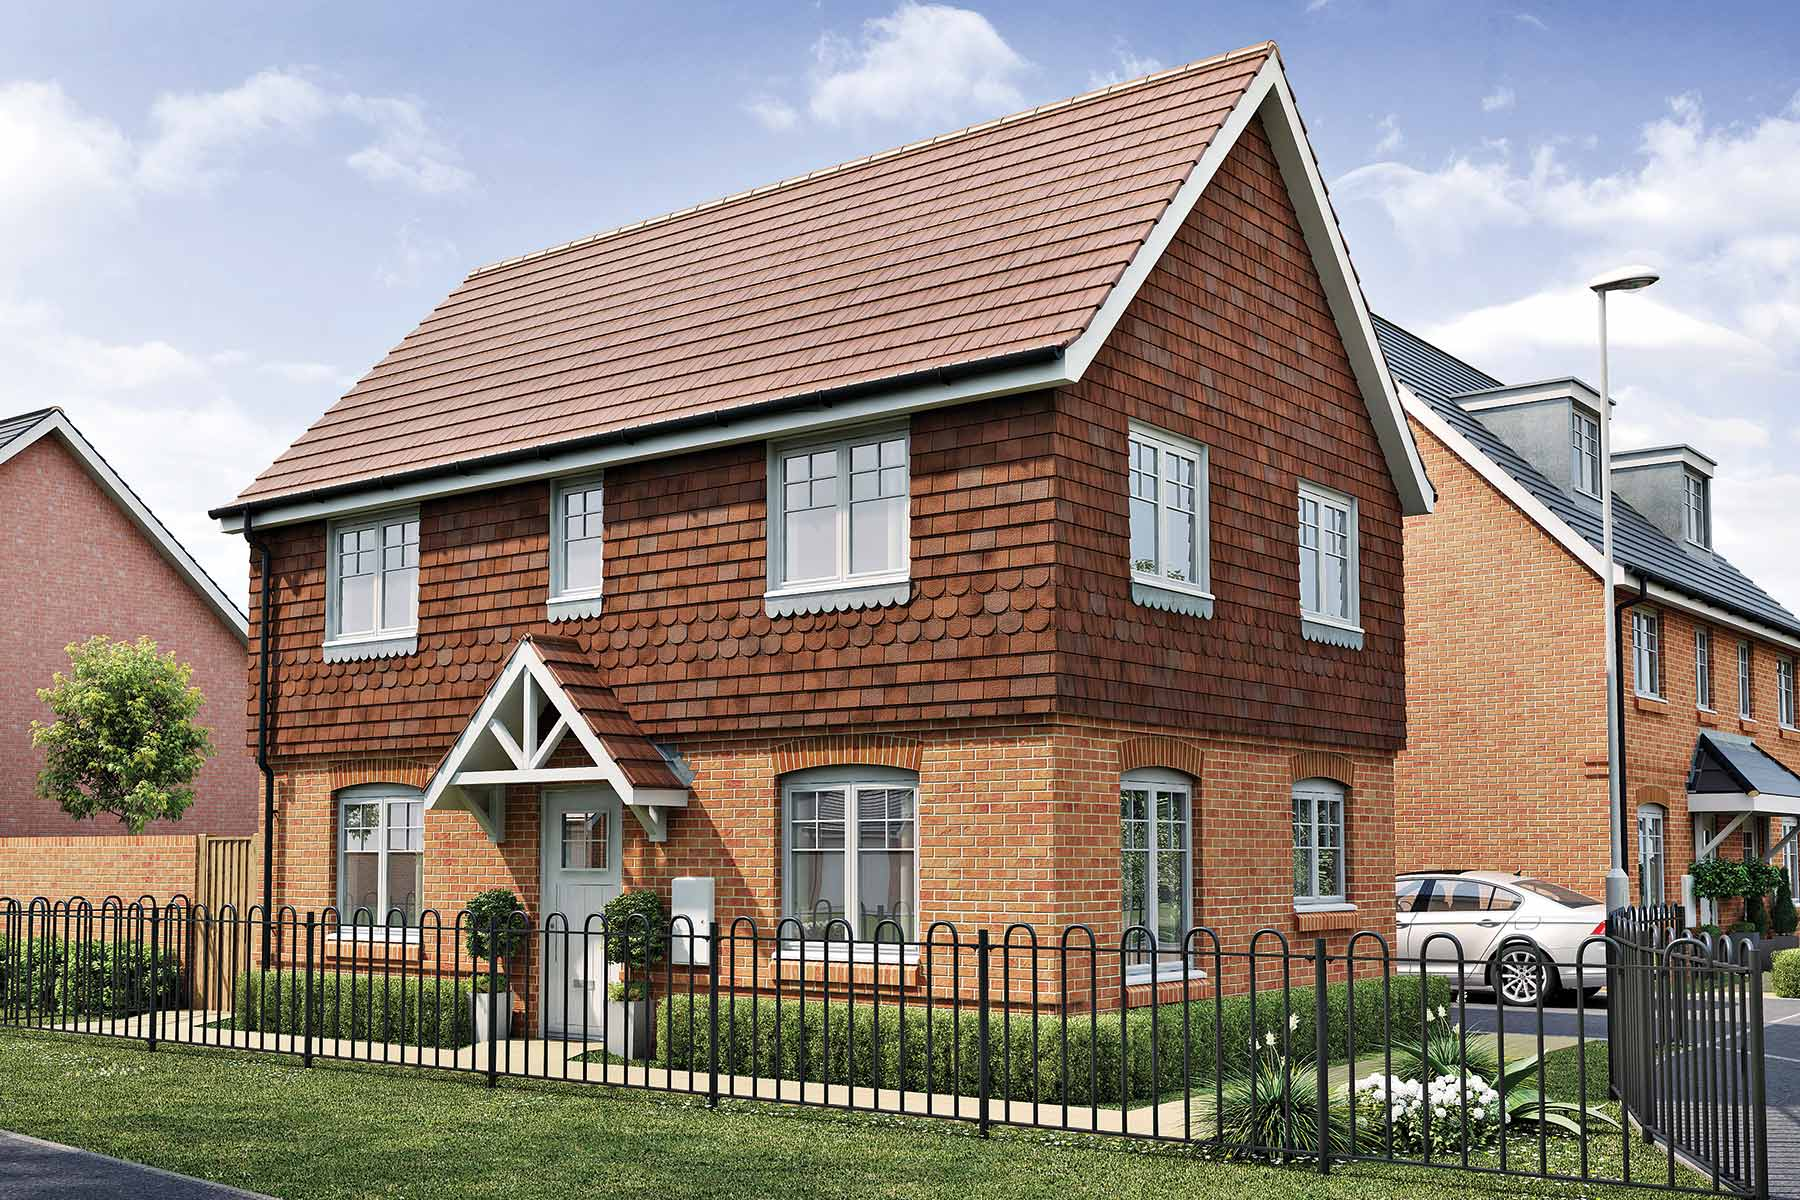 Artists impression of typical Easedale home